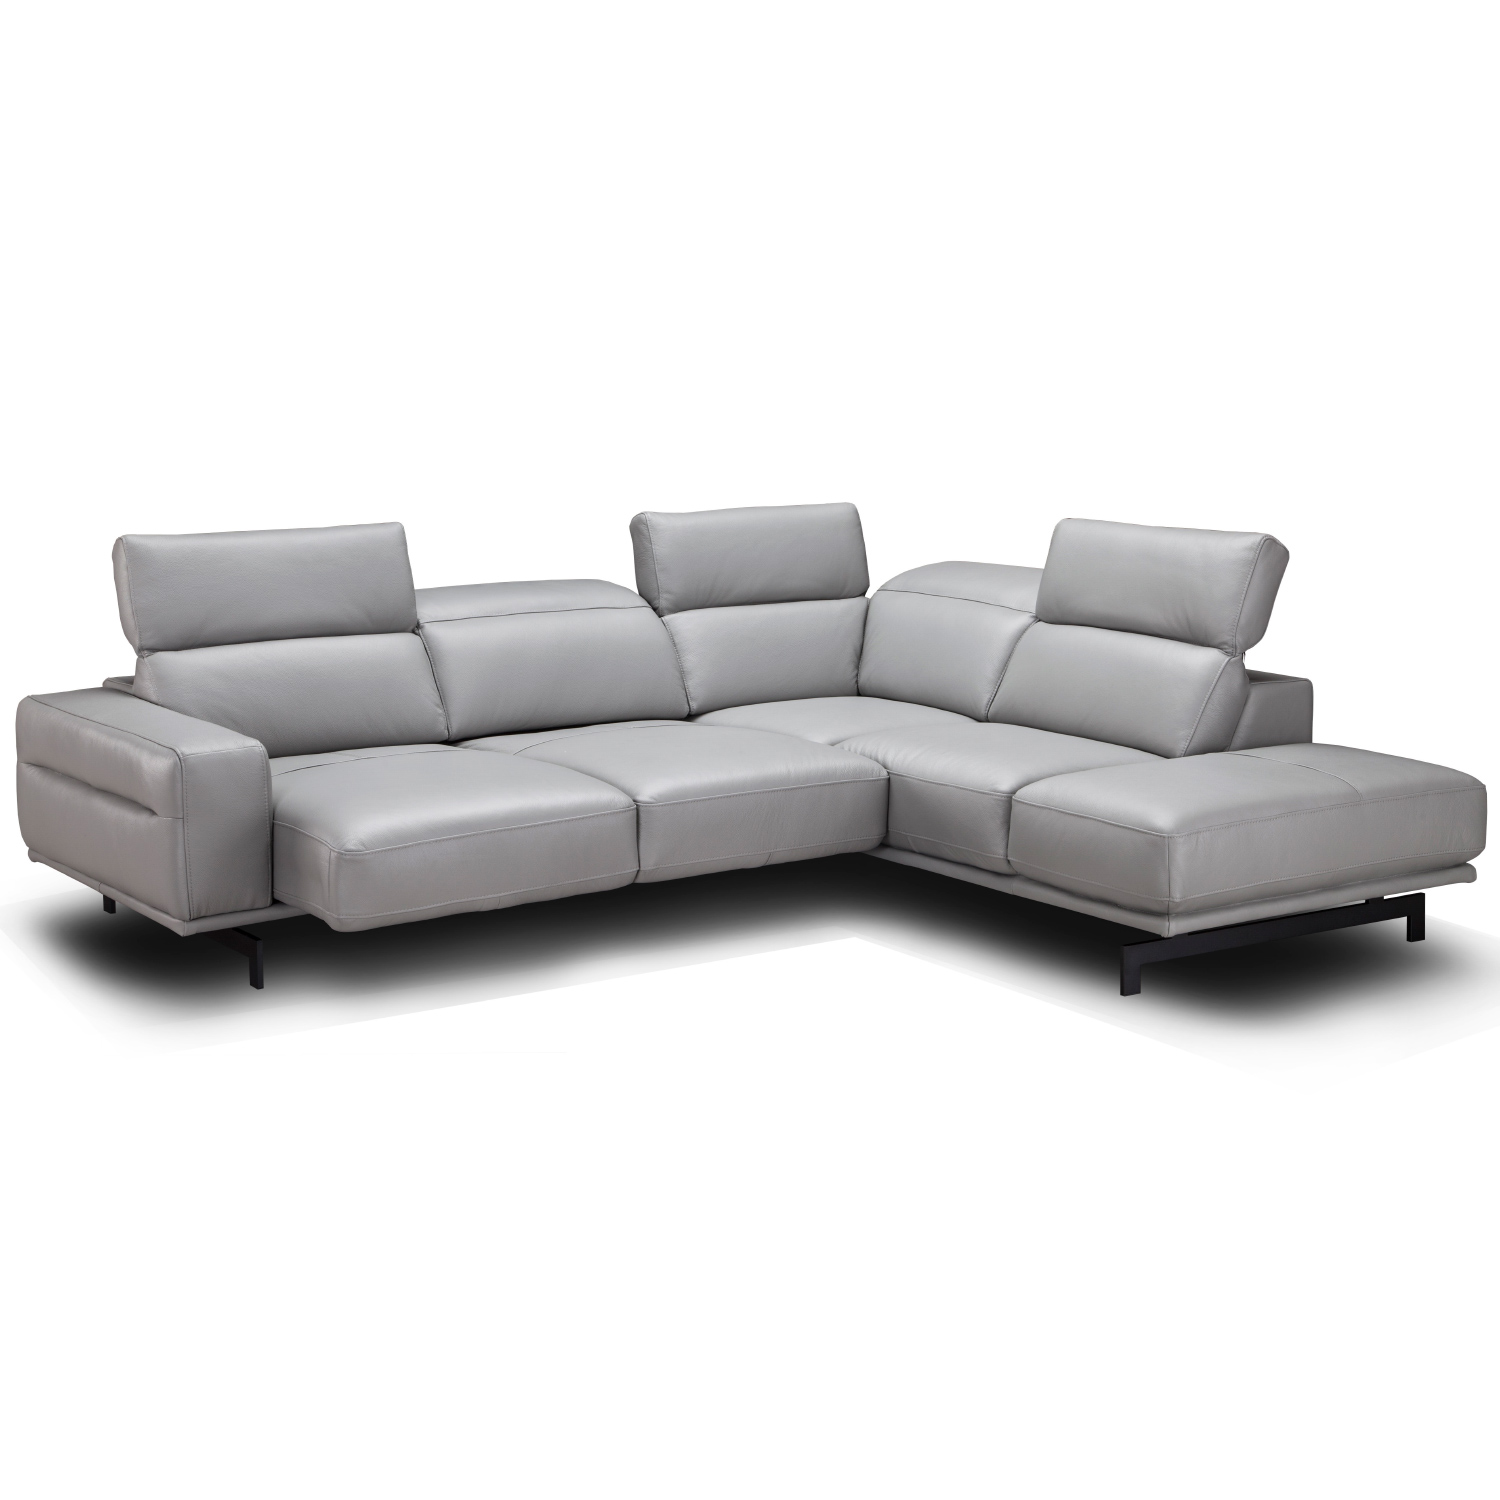 Davenport Sectional Sofa W Right Facing Chaise In Light Grey Top Grain Leather By J And M Furniture